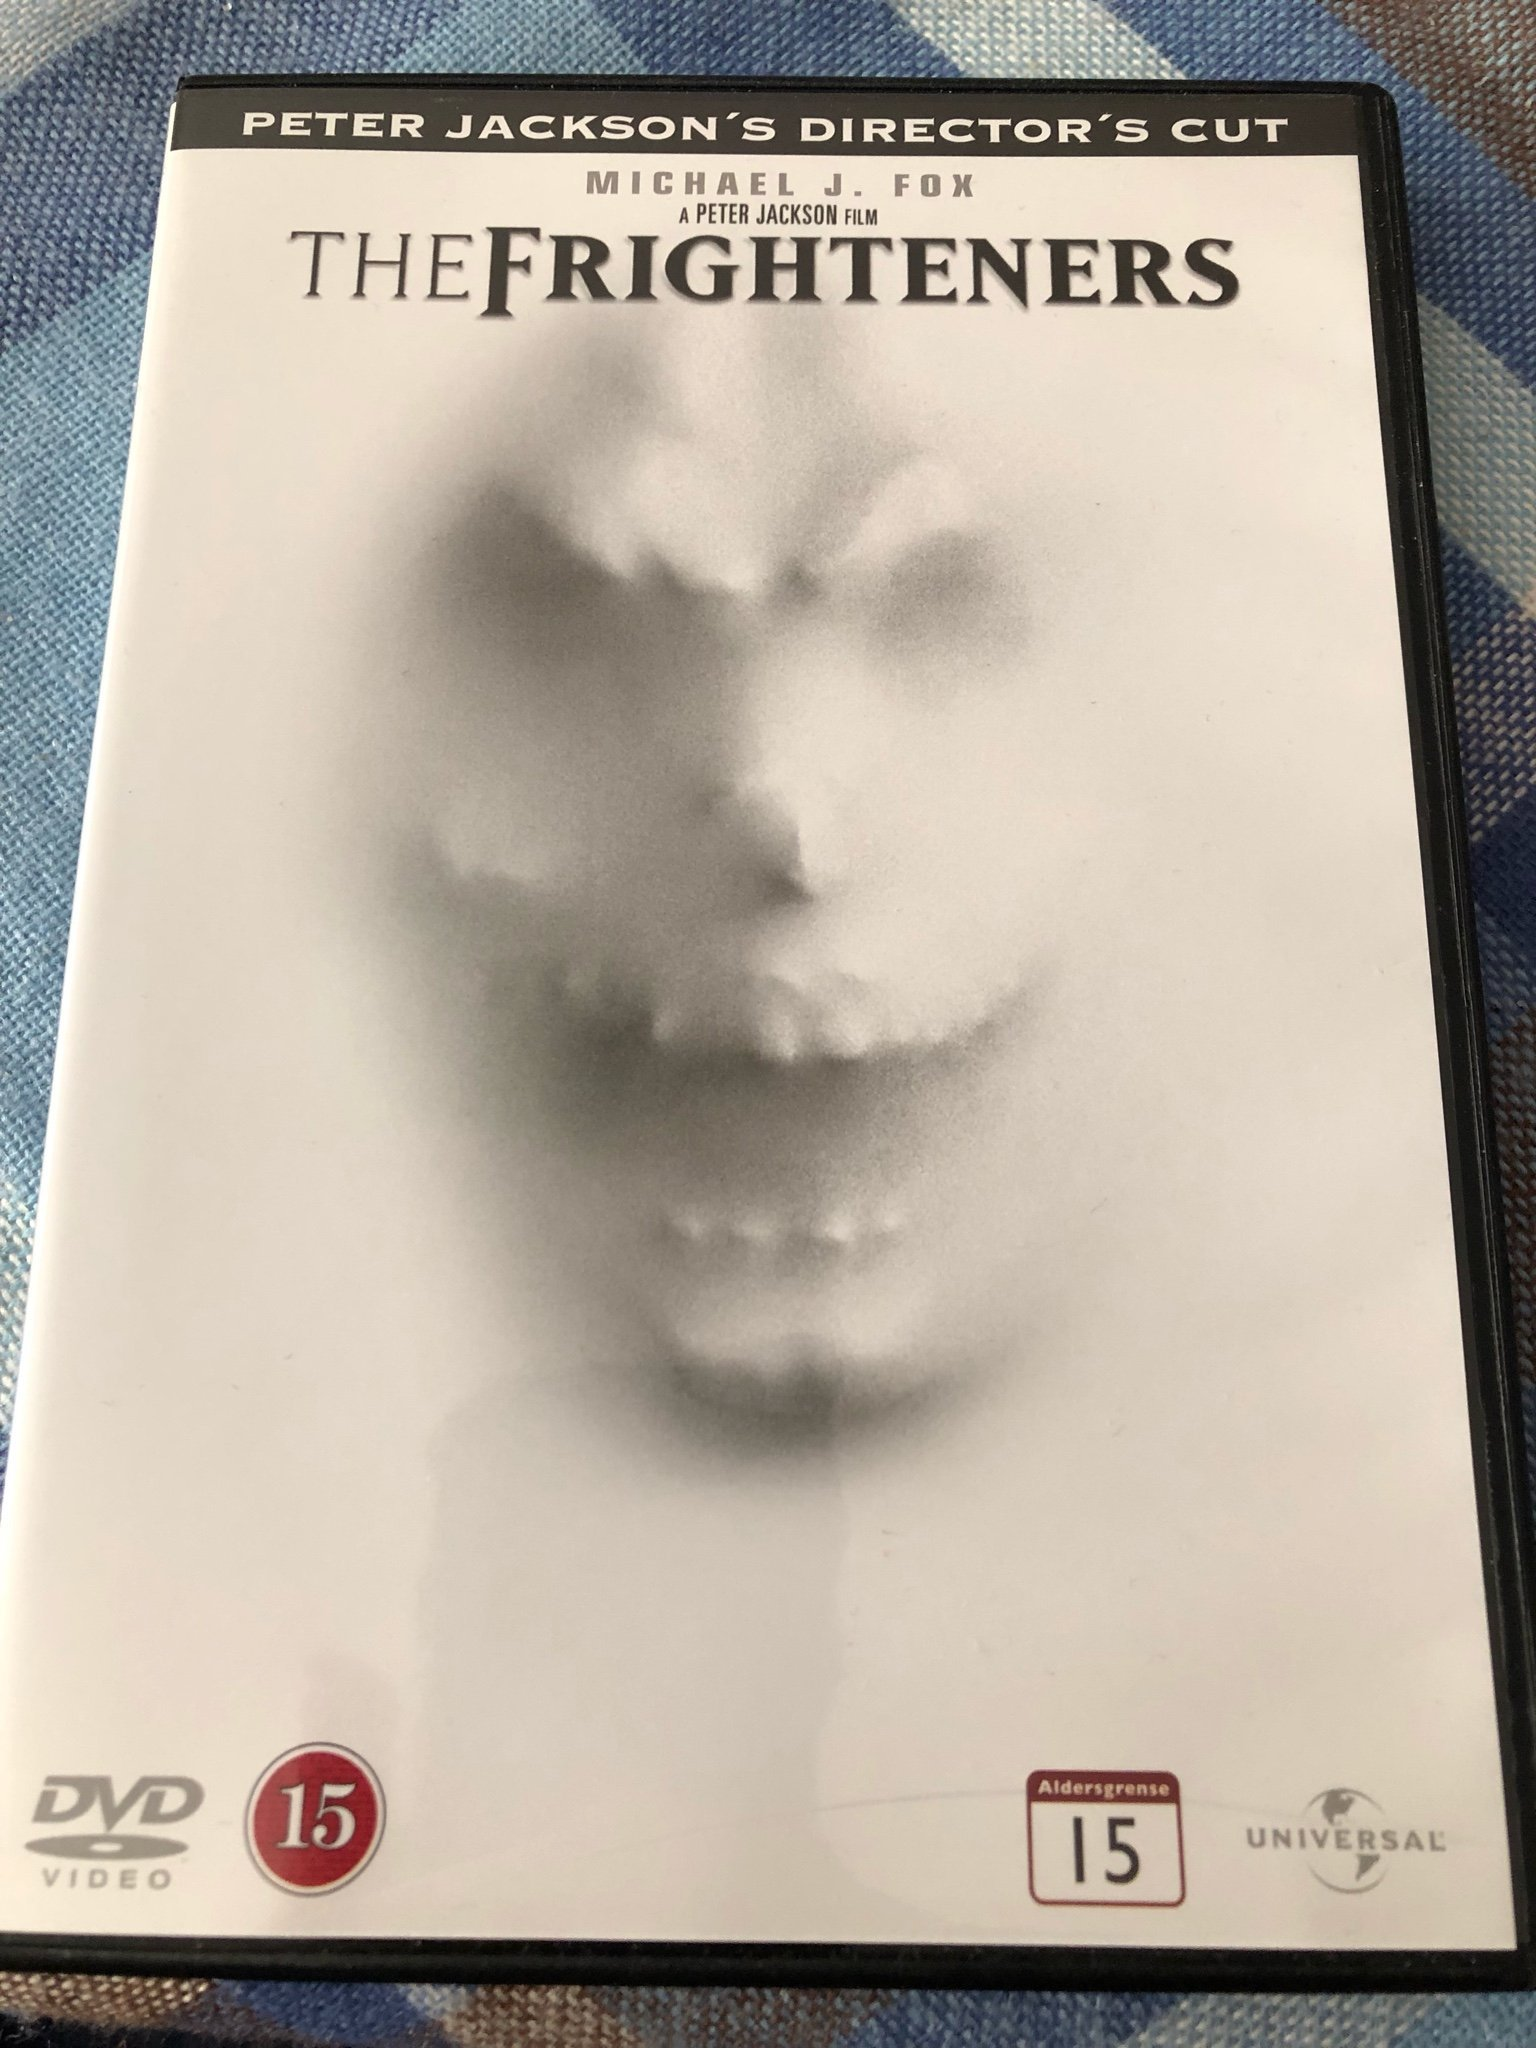 The Frighteners (Michael J. Fox) Director's Cut. Dvd